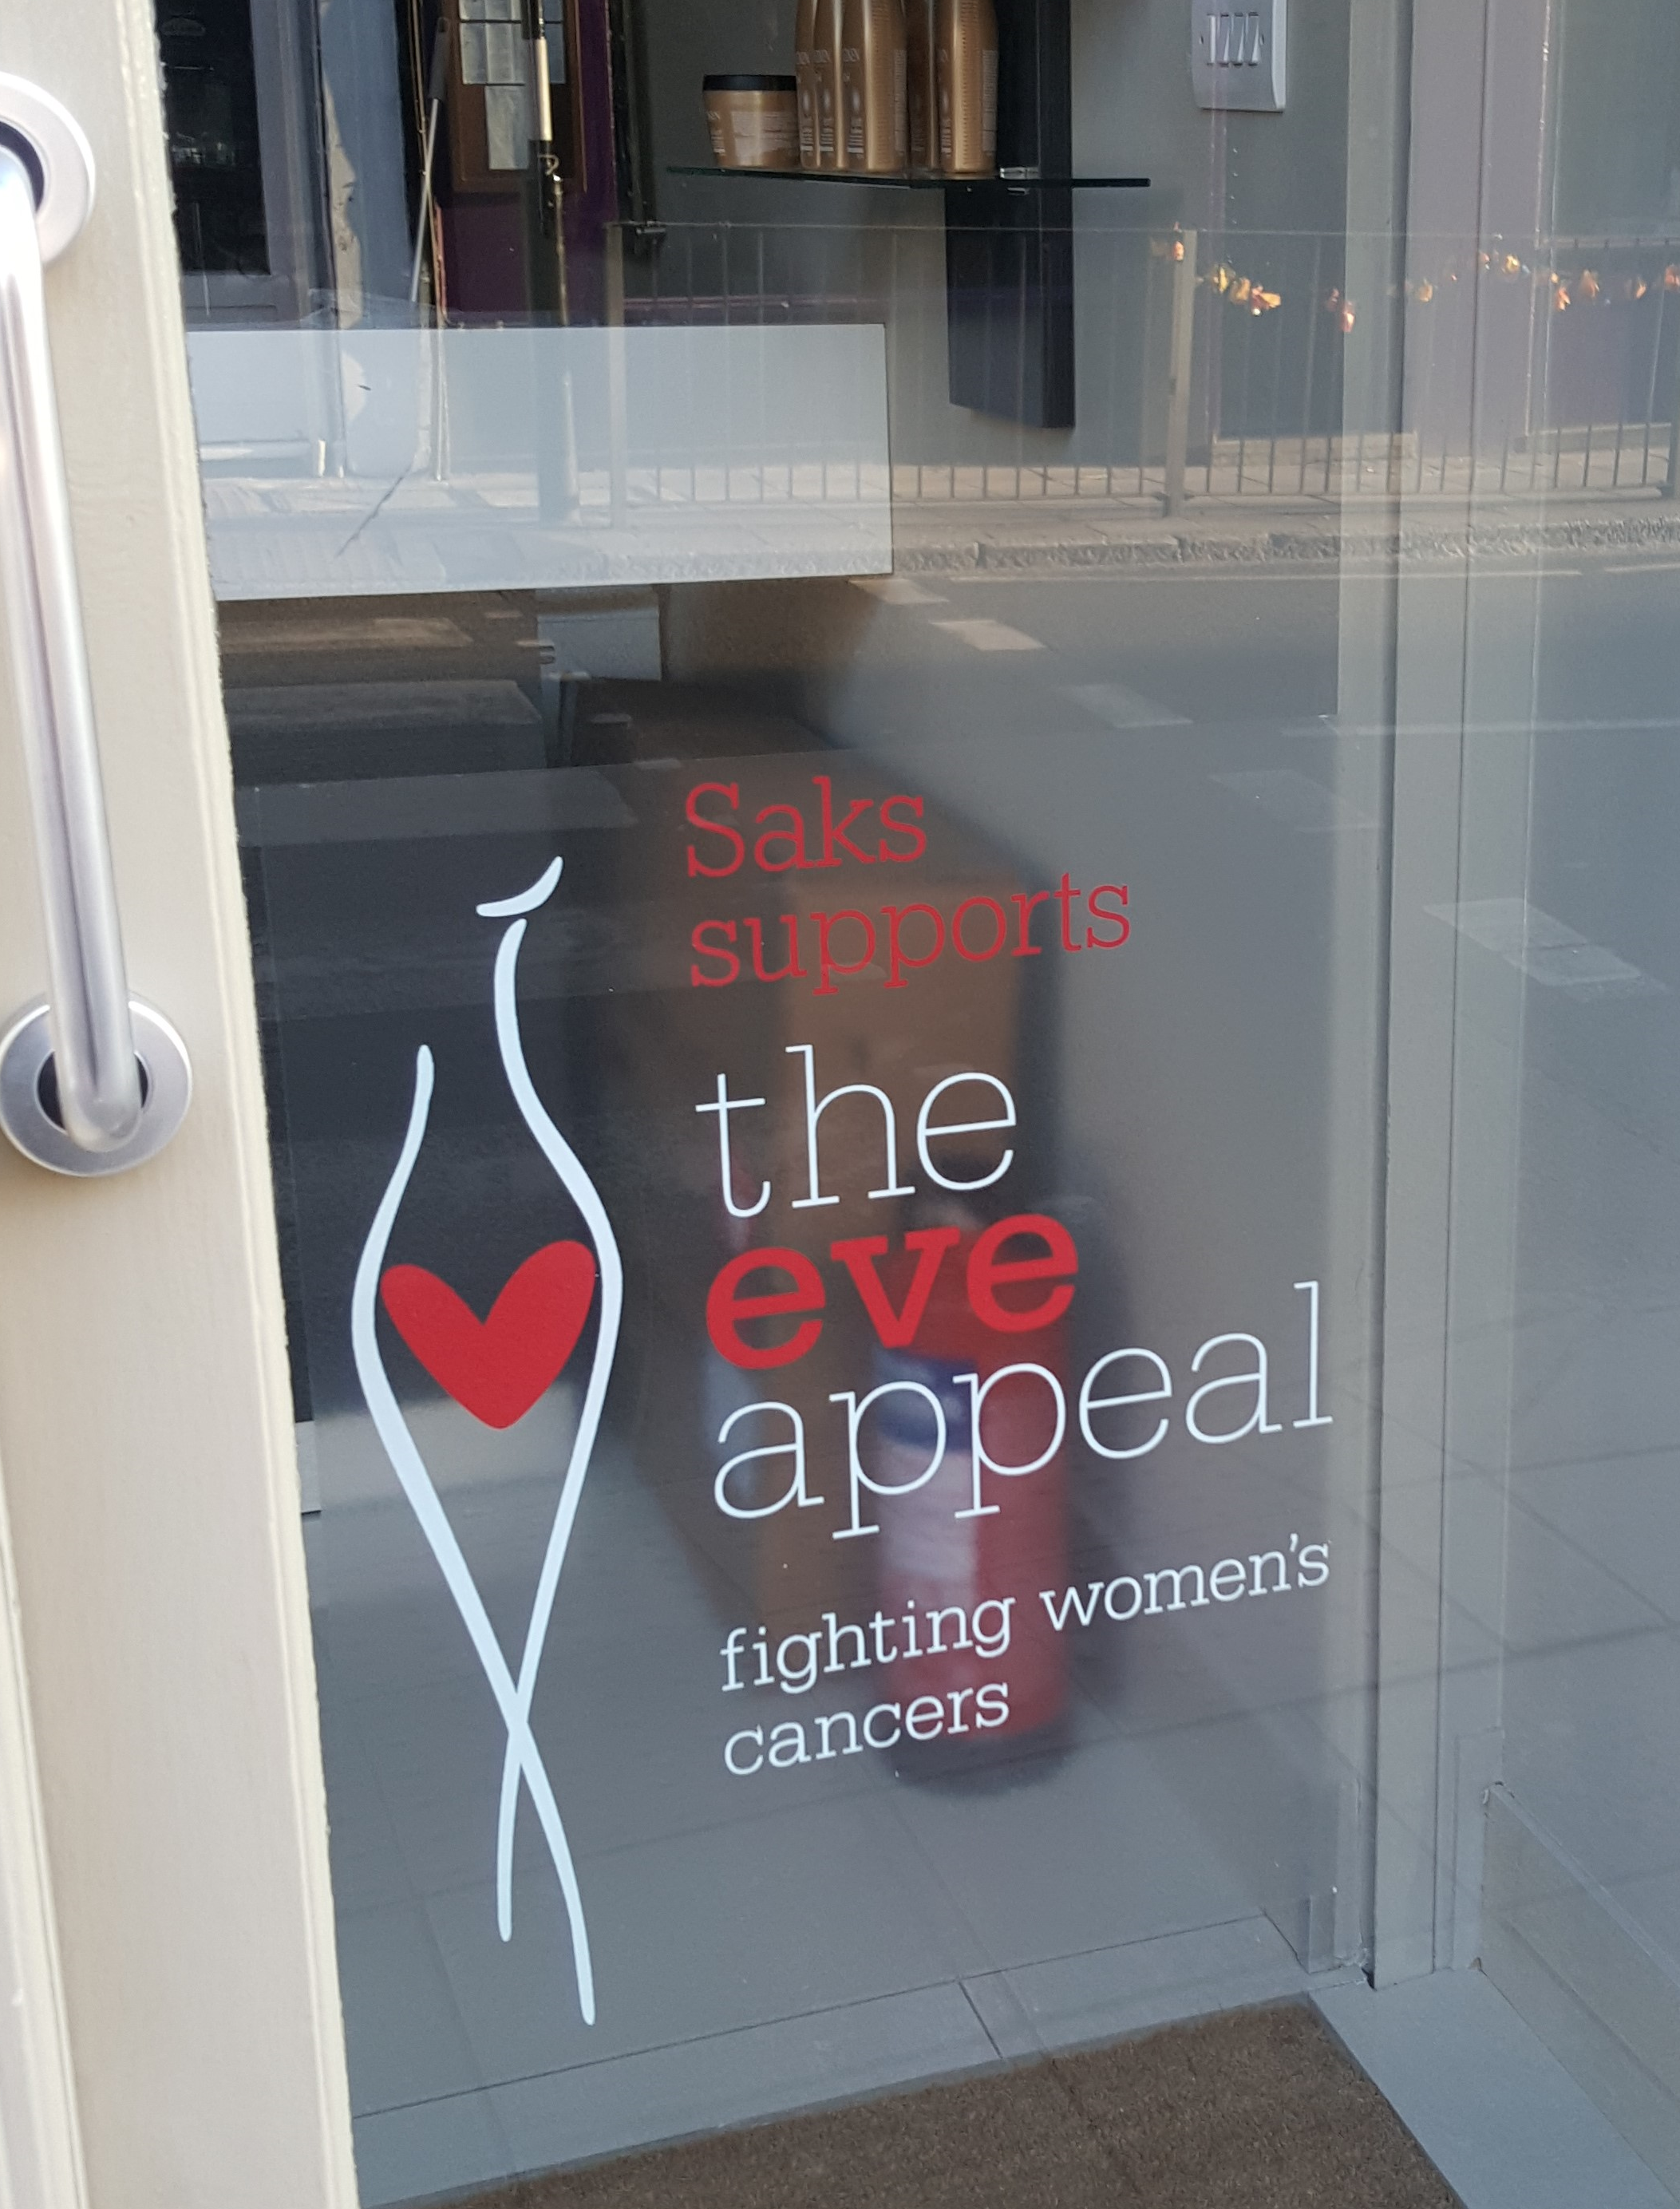 Saks Crouch End is fighting women's cancers with The Eve Appeal